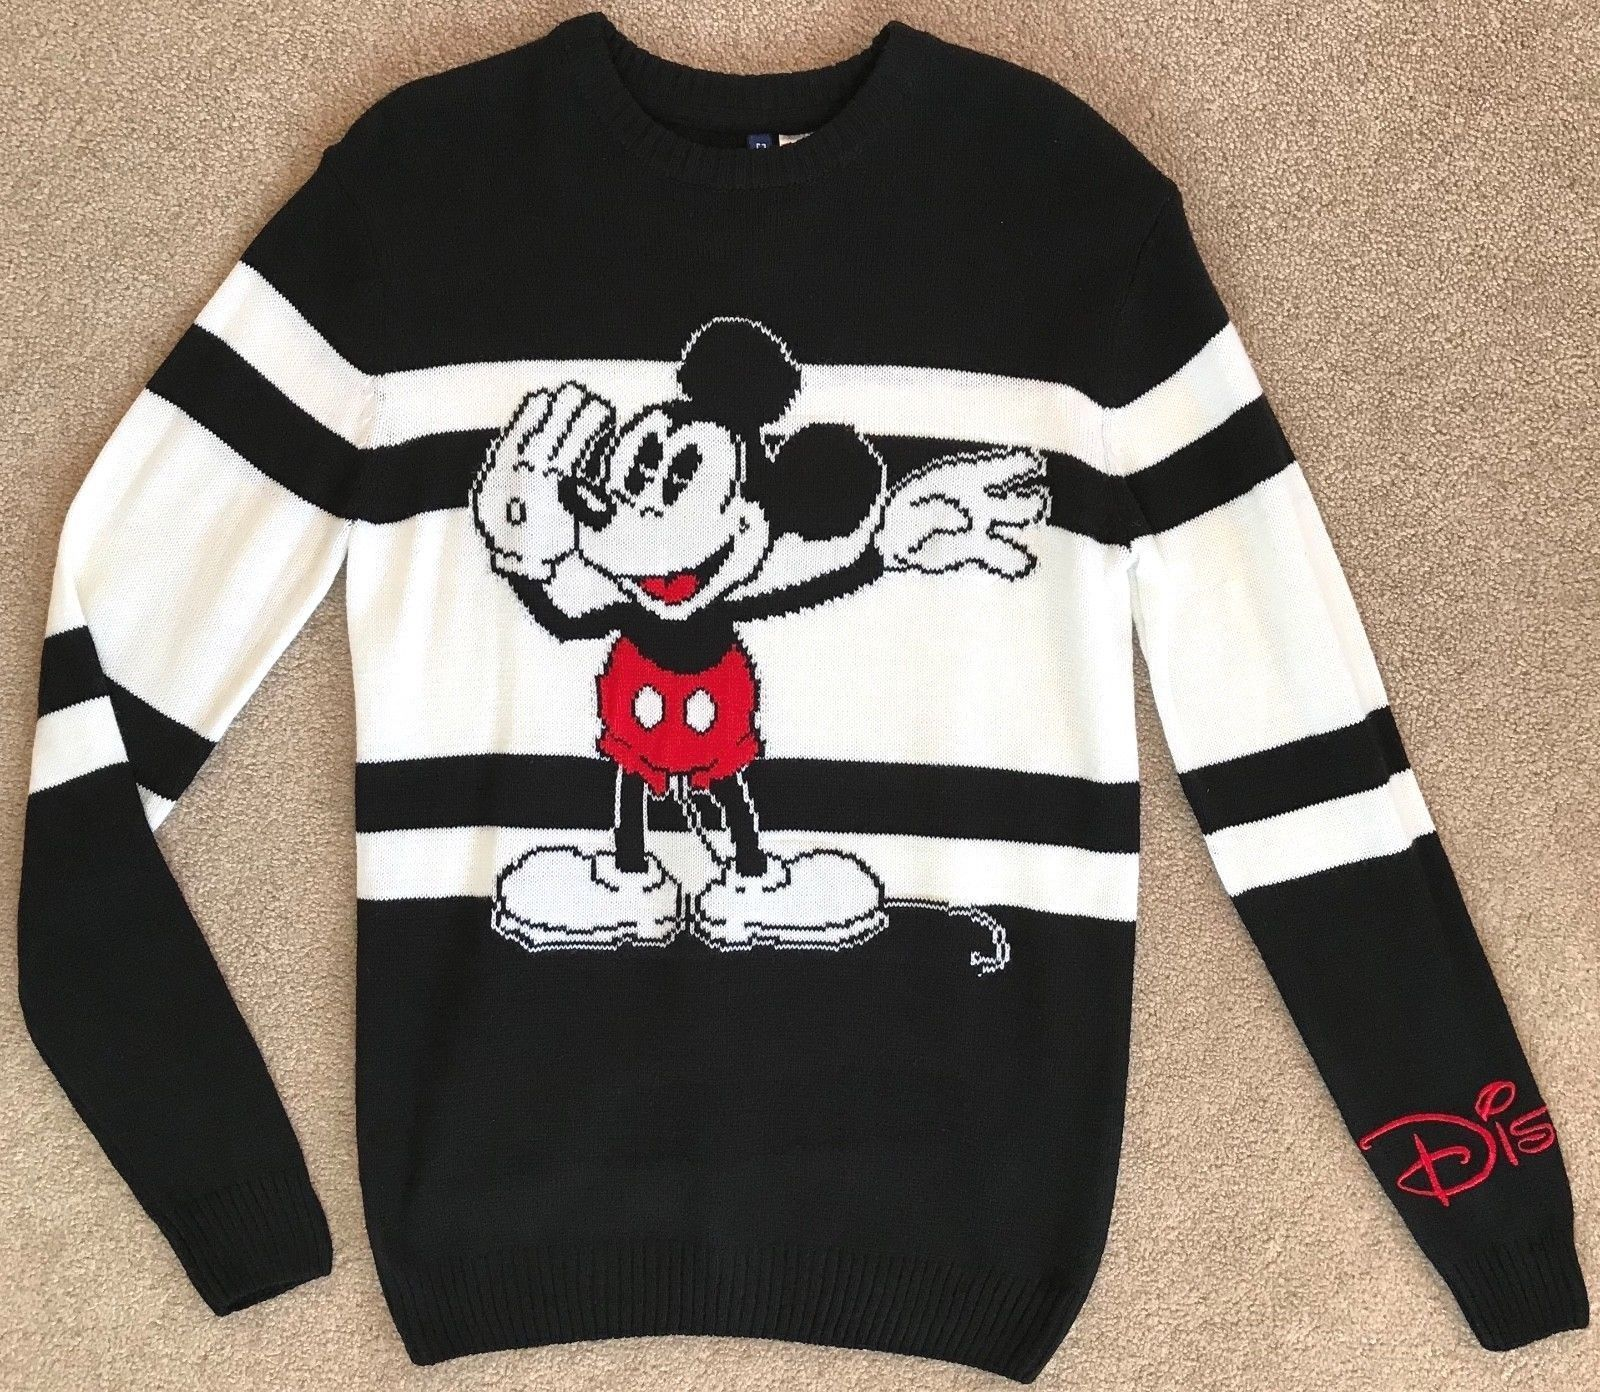 H M DISNEY MENS MICKEY MOUSE SWEATER NWT! XS NOT MOSCHINO  HM  Moschino   Hot  Trending  Fashion  Shop  Clothing  Trend  Popular  Buy  ad  Sponsored  ... 2519b27f1